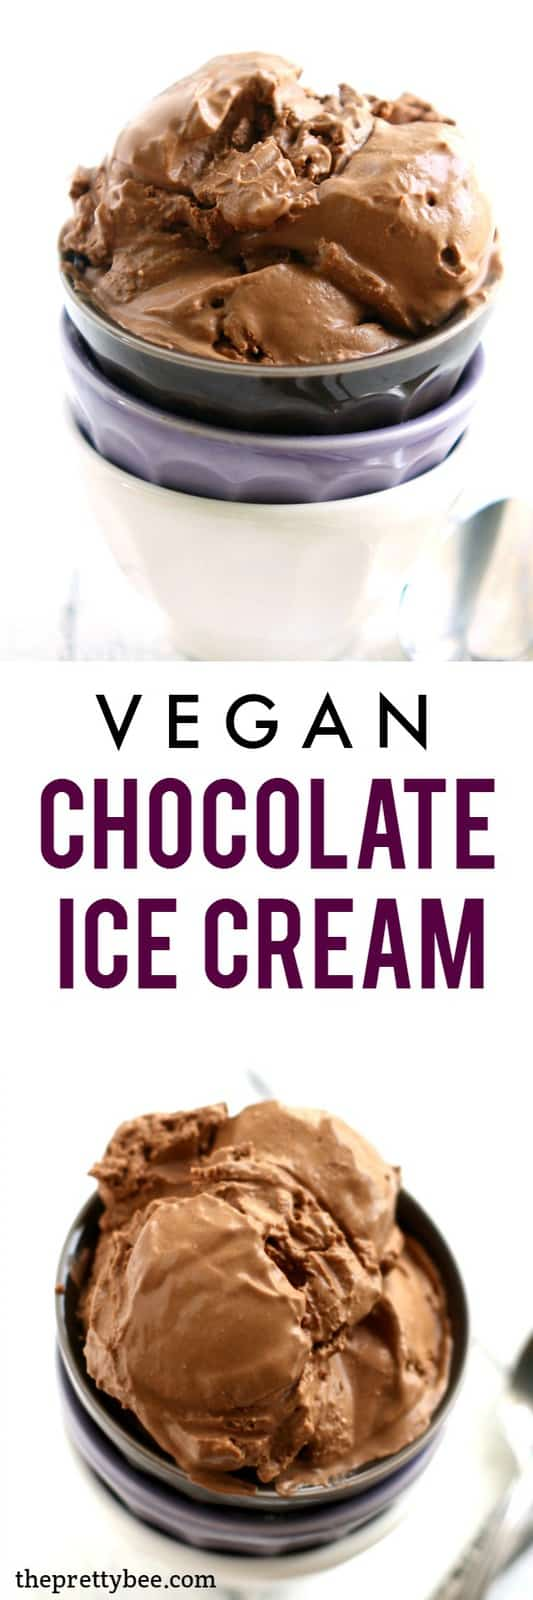 The best vegan chocolate ice cream, and it's made with just FIVE ingredients!